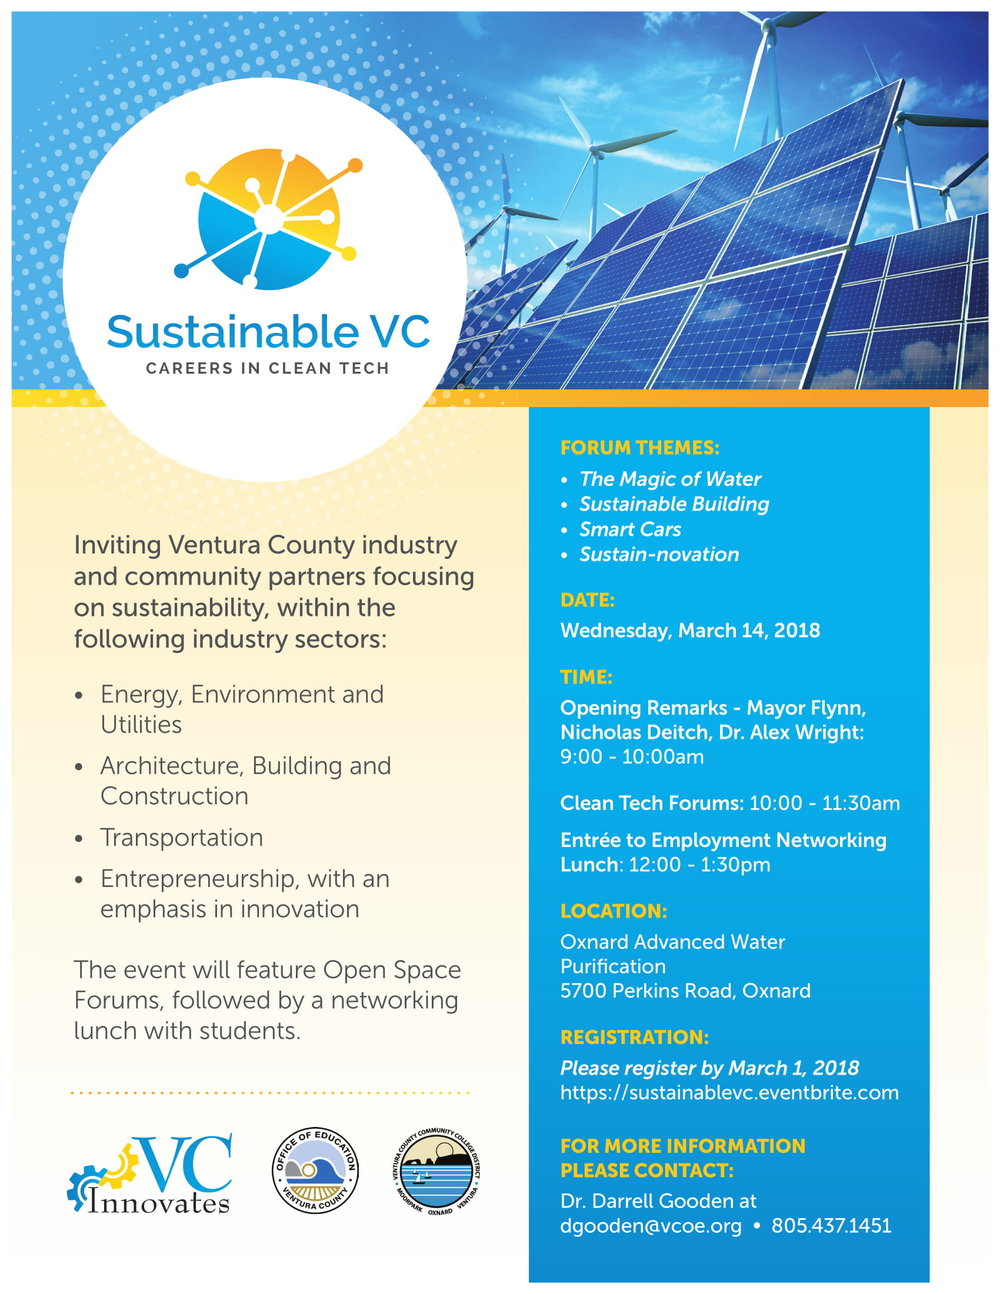 SUSTAINABLE VC GÇô Careers in Clean Tech_Flyer BIZ PARTNERS_(2-1-18)-1.jpg